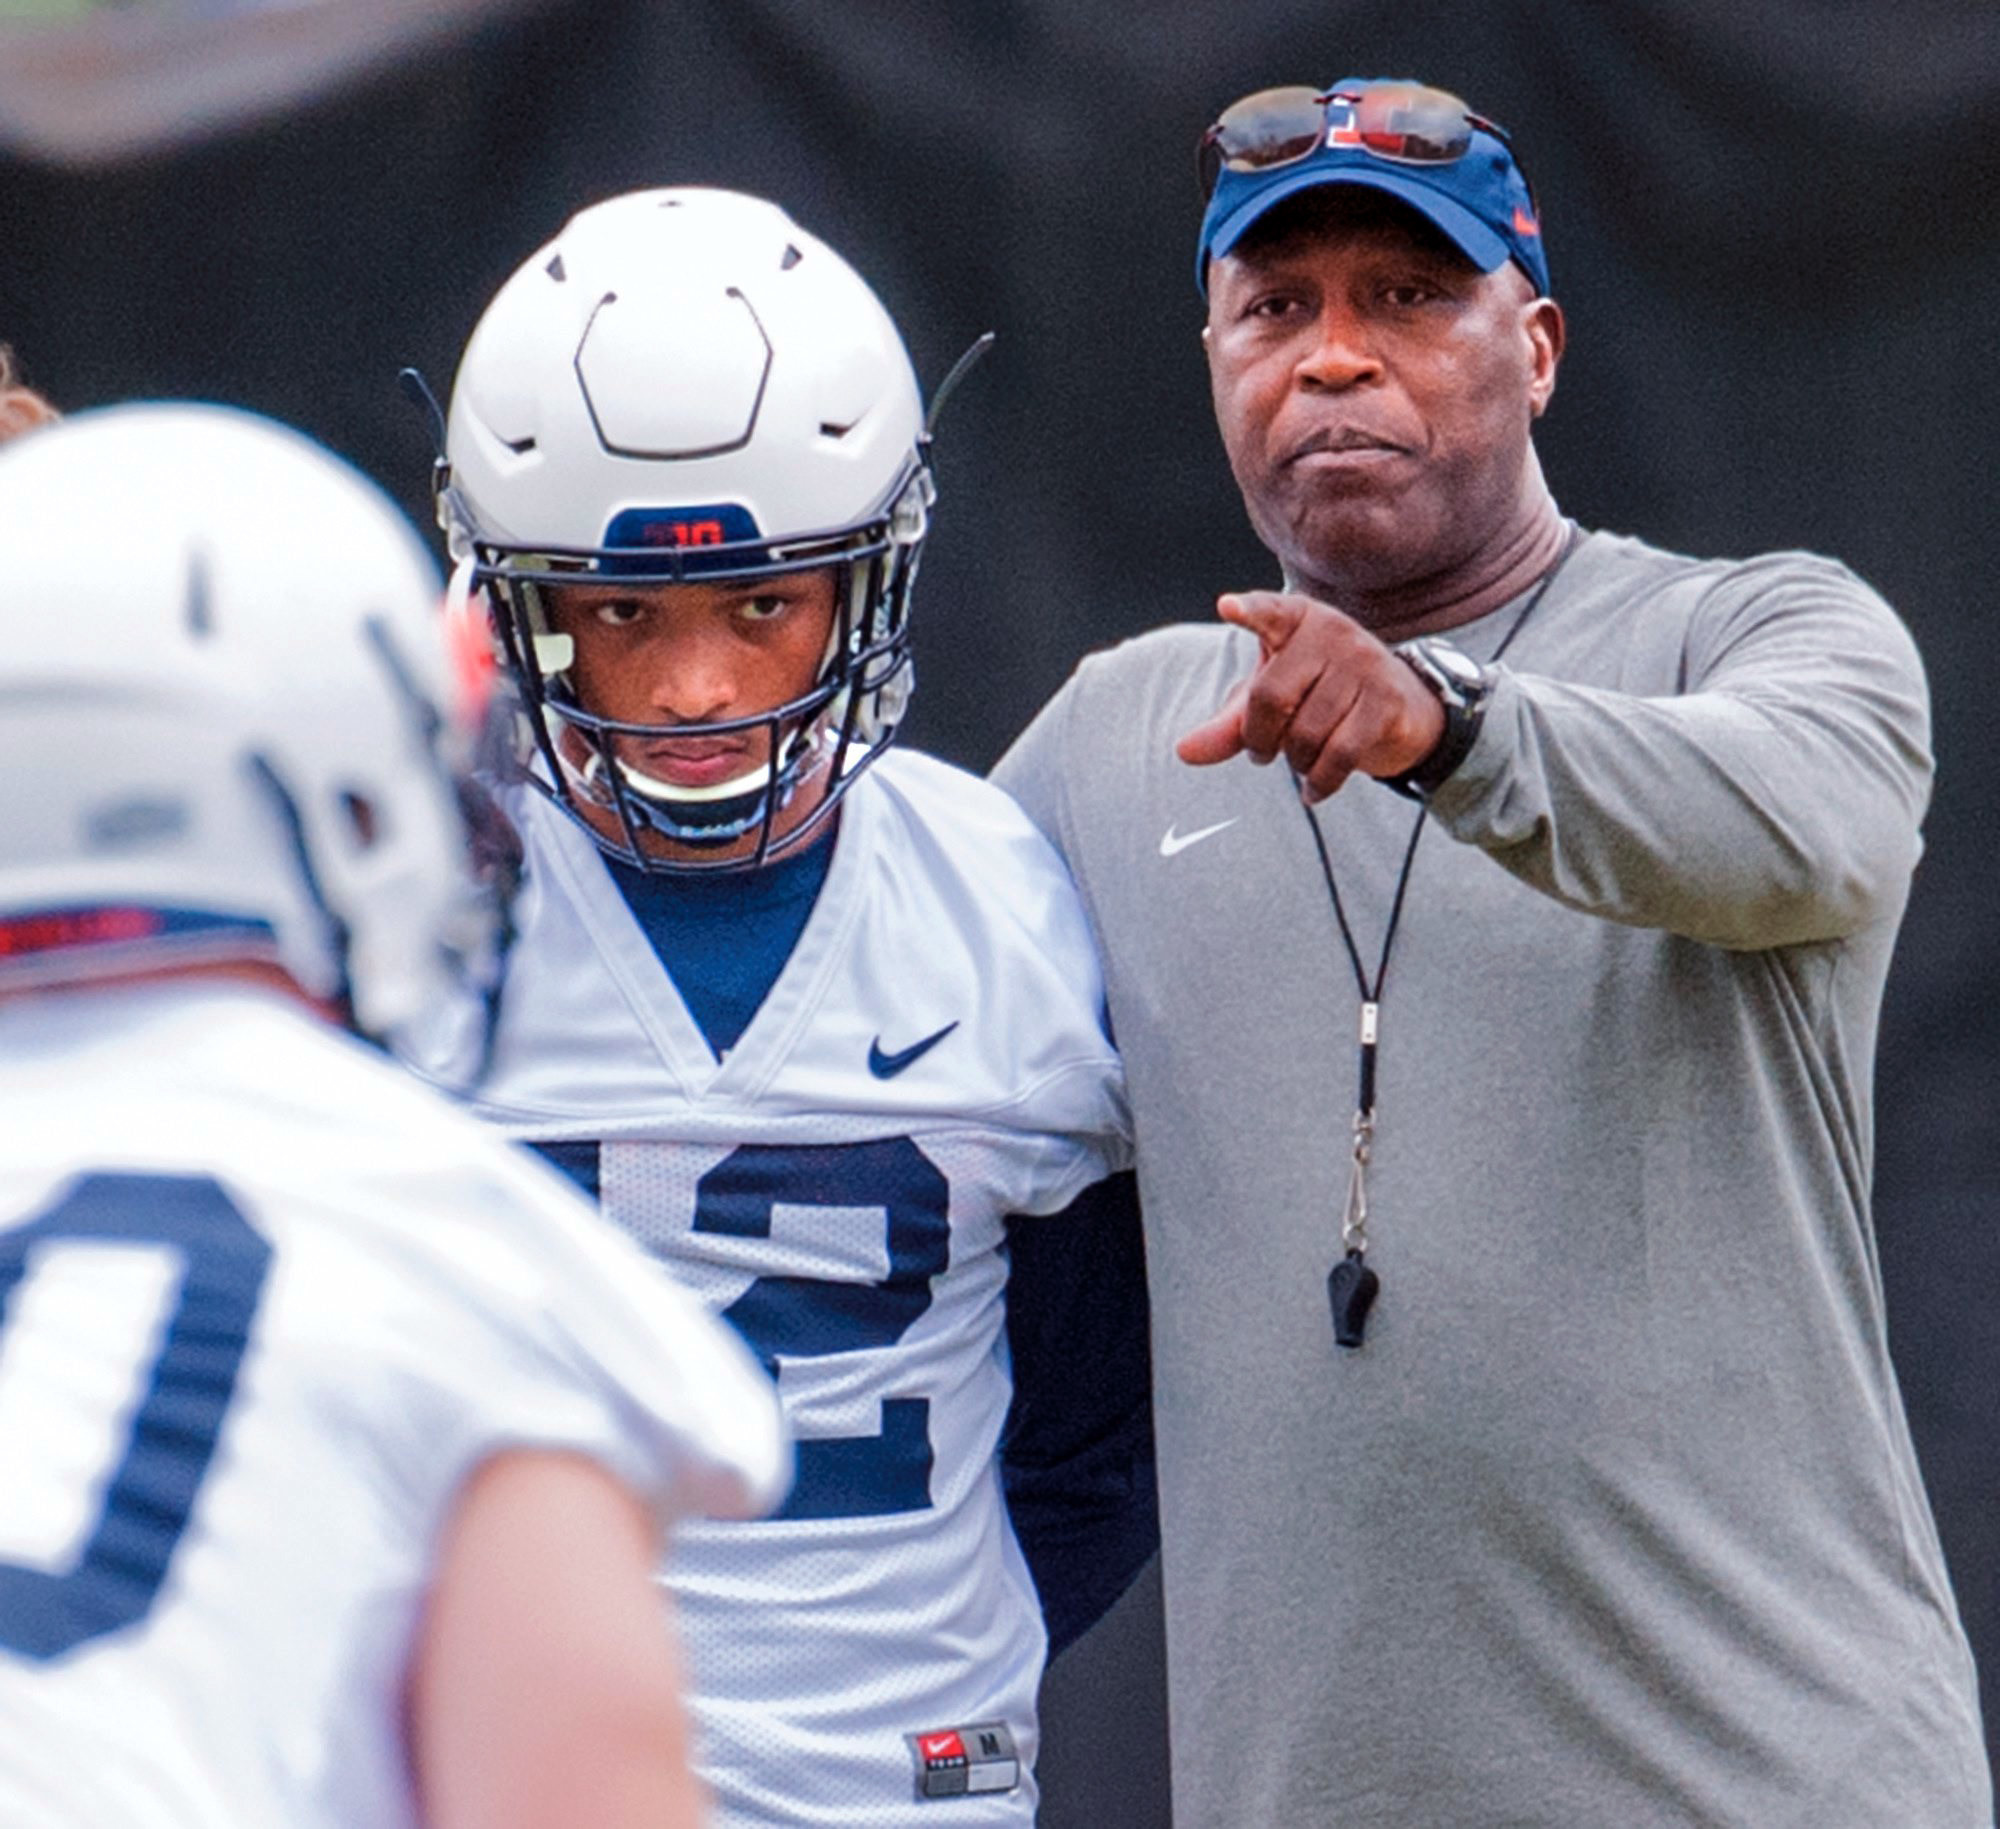 In this Aug. 5, 2016 photo, Illinois head football coach Lovie Smith chats with defensive back Chris James during NCAA college football practice at Memorial Stadium in Champaign, Ill. The Illini are adapting to the defensive philosophy their new coach Smi